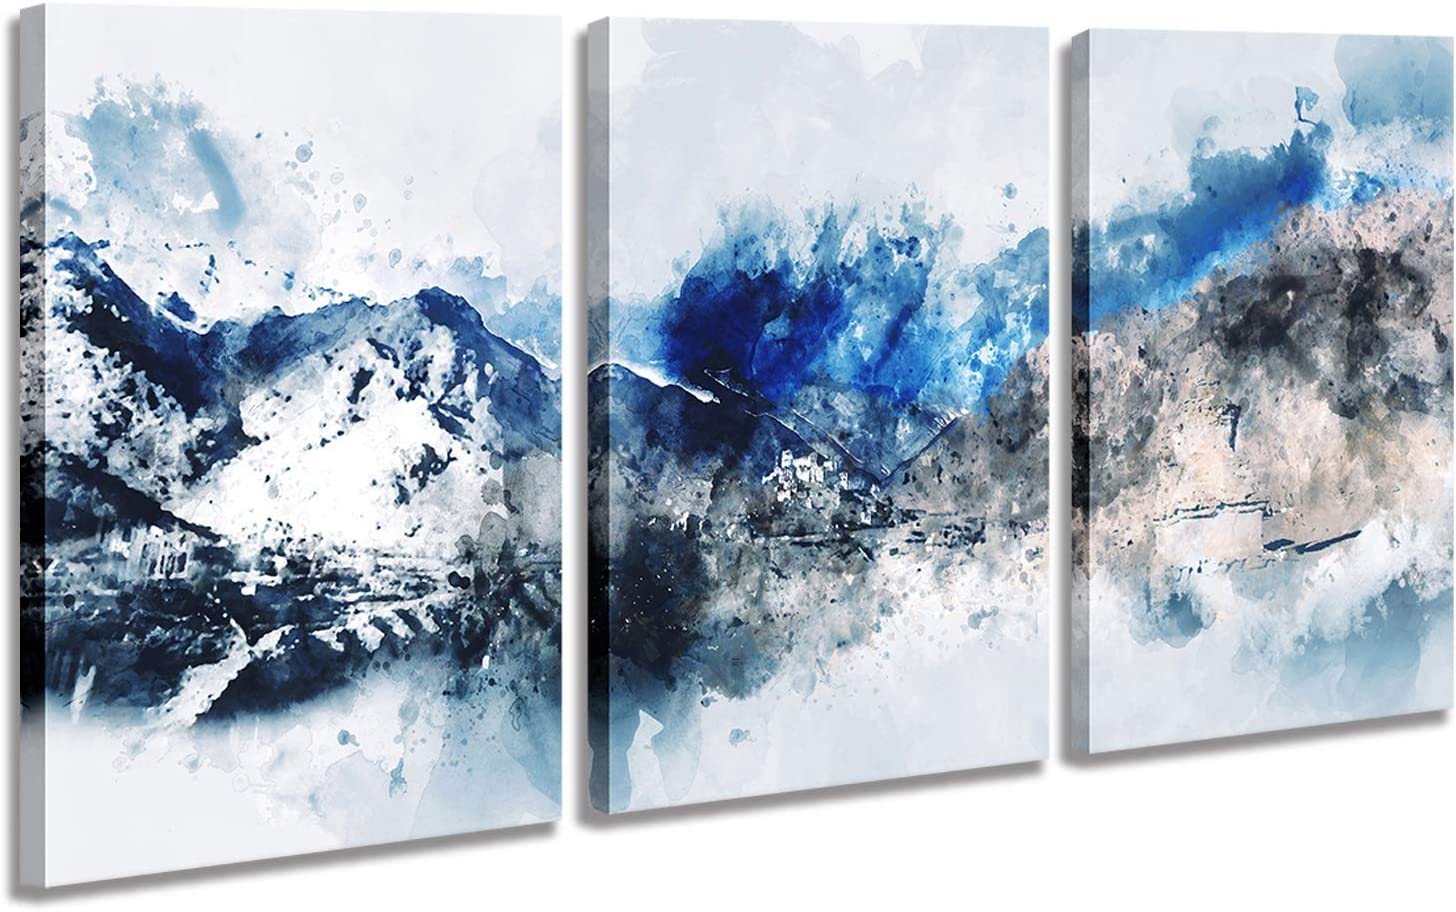 Modern Abstract Paintings Wall Art Canvas Watercolor Painting Picture Blue Mountain Painting Framed Ready to Hang for Living Room Bedroom Home Office Decor 12x 16 in 3 Panels